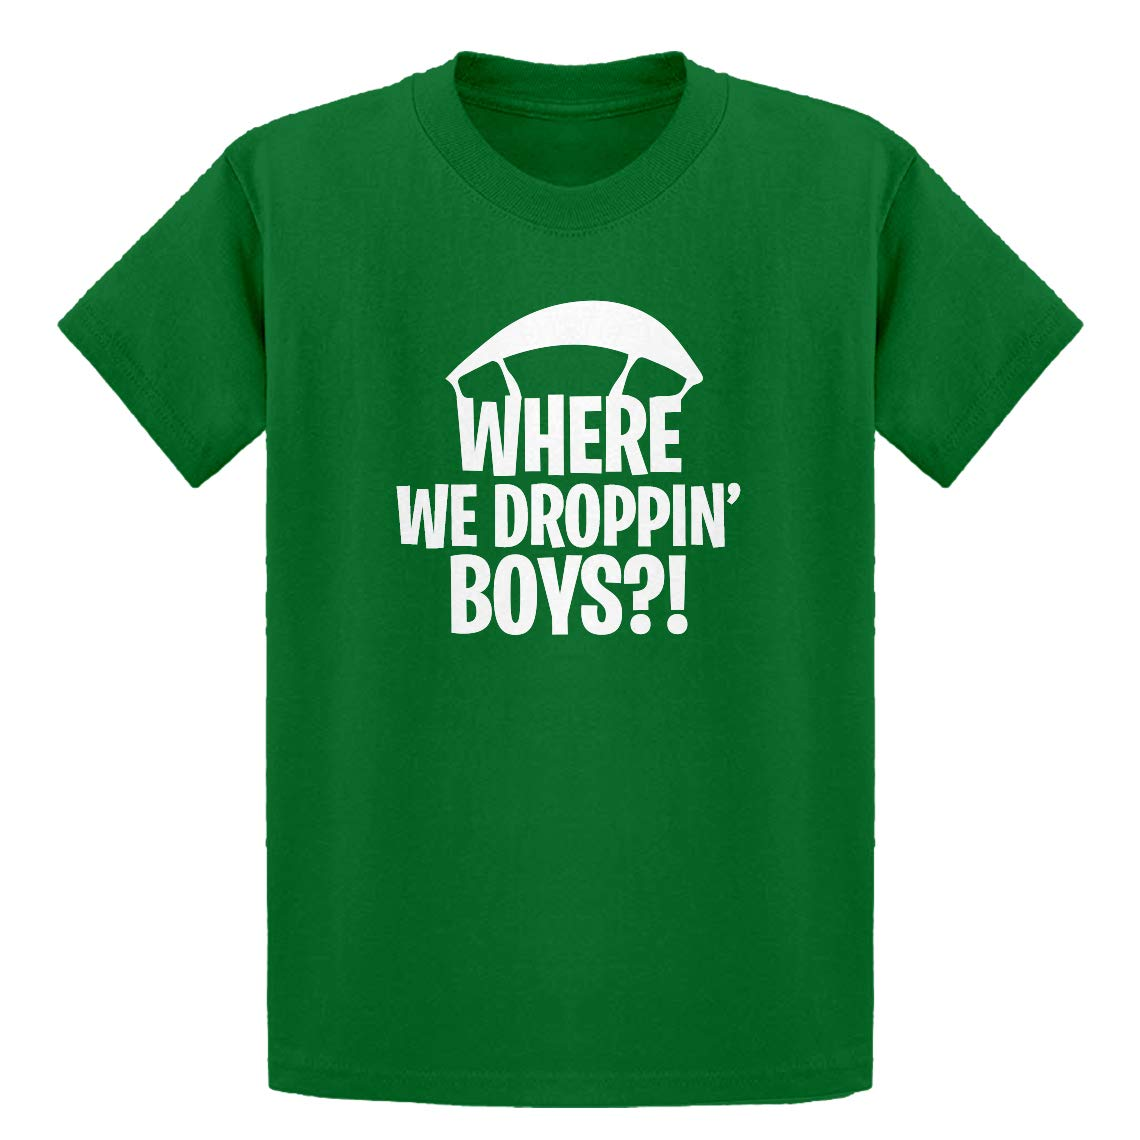 Indica Plateau Youth Where we Droppin' Boys?! Kids T-Shirt 3748-Y